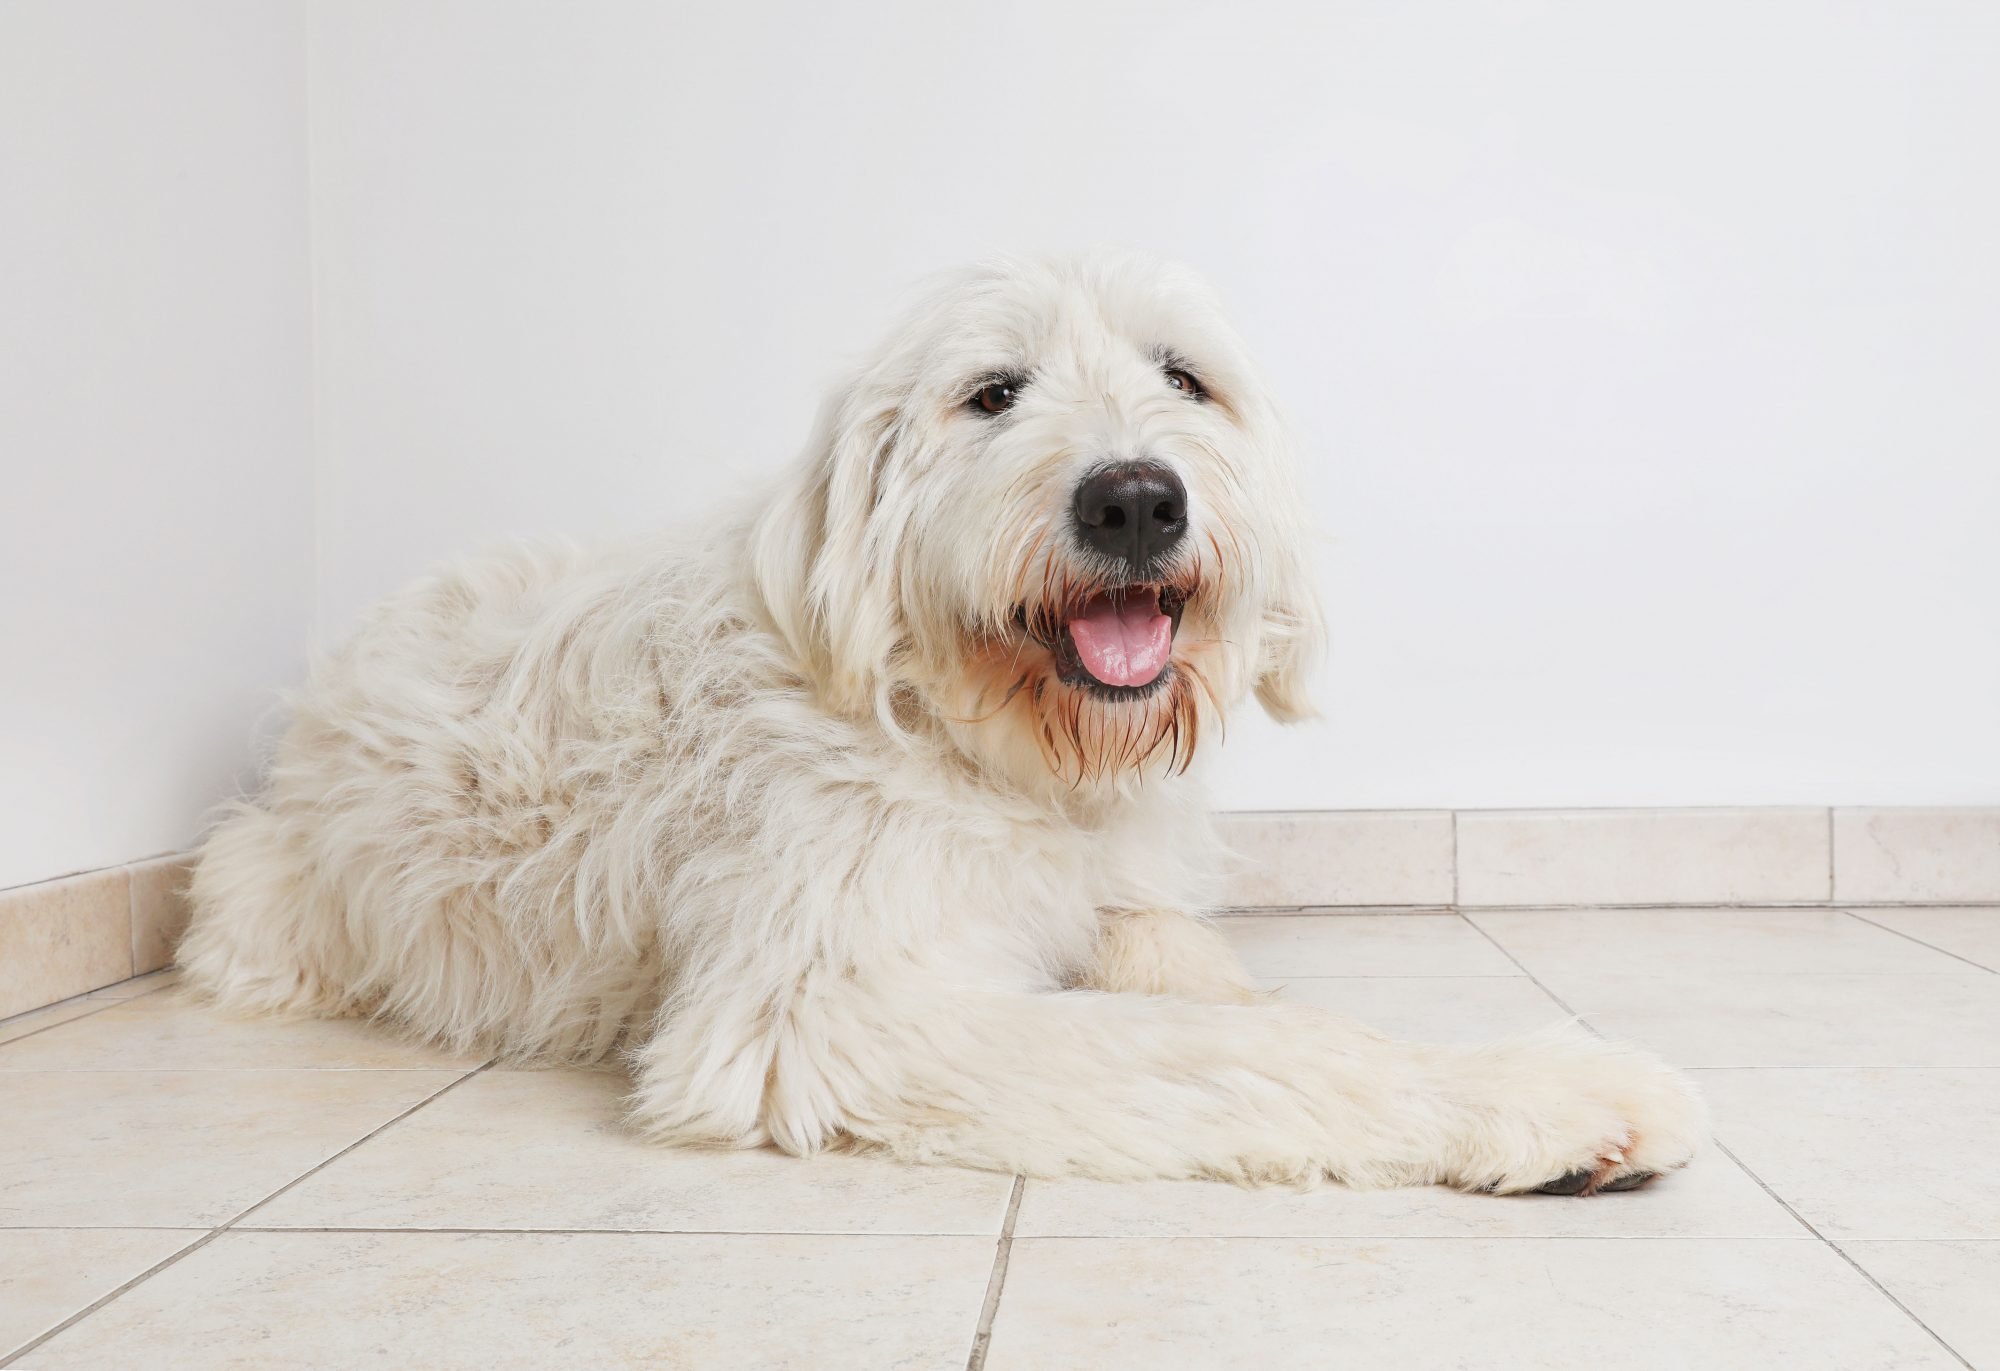 White Pyredoodle Laying on Tile